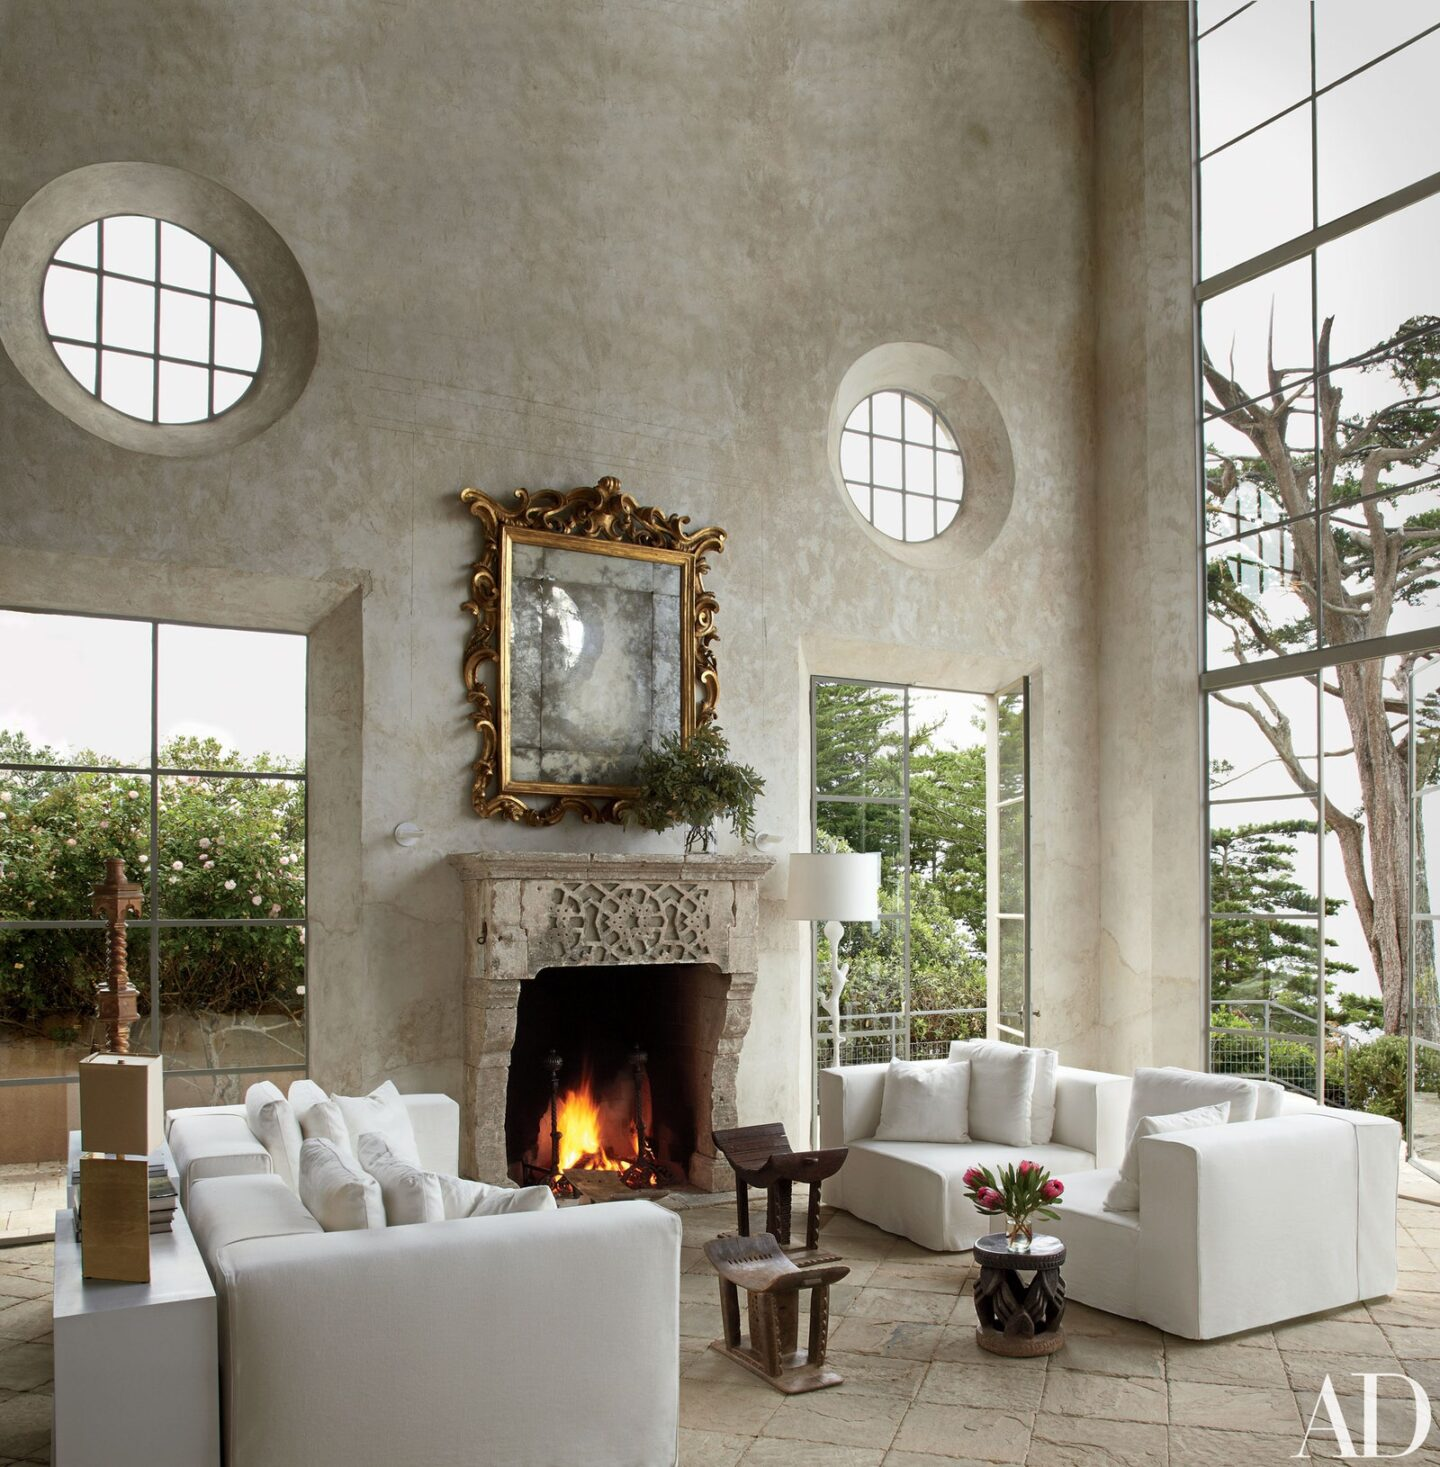 Richard Shapiro designed living room in Malibu with plaster walls and soaring ceilings. #richardshapiro #interiordesign #oldworld #livingroom #plasterwalls